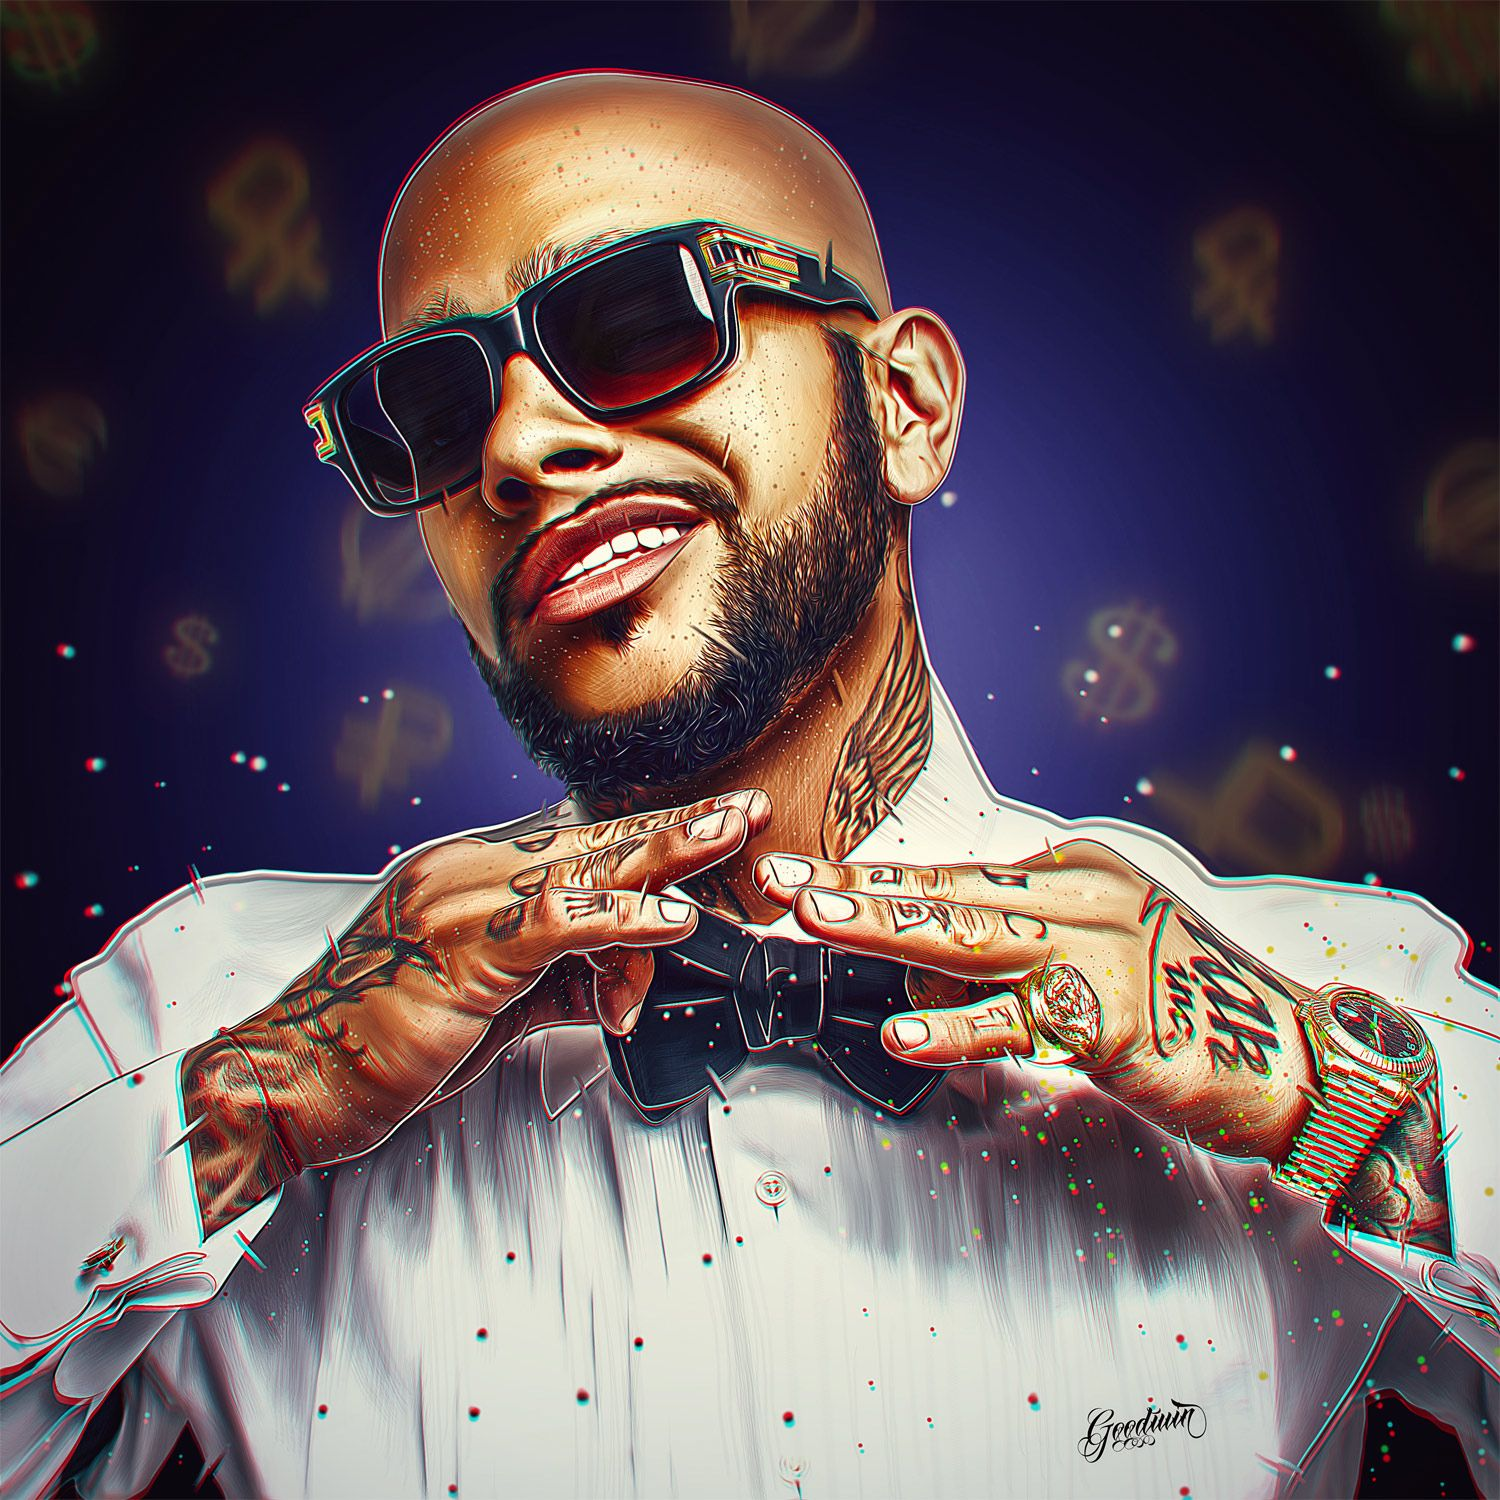 Everything else will wait: Timati decided to leave the scene for the sake of his daughter 15